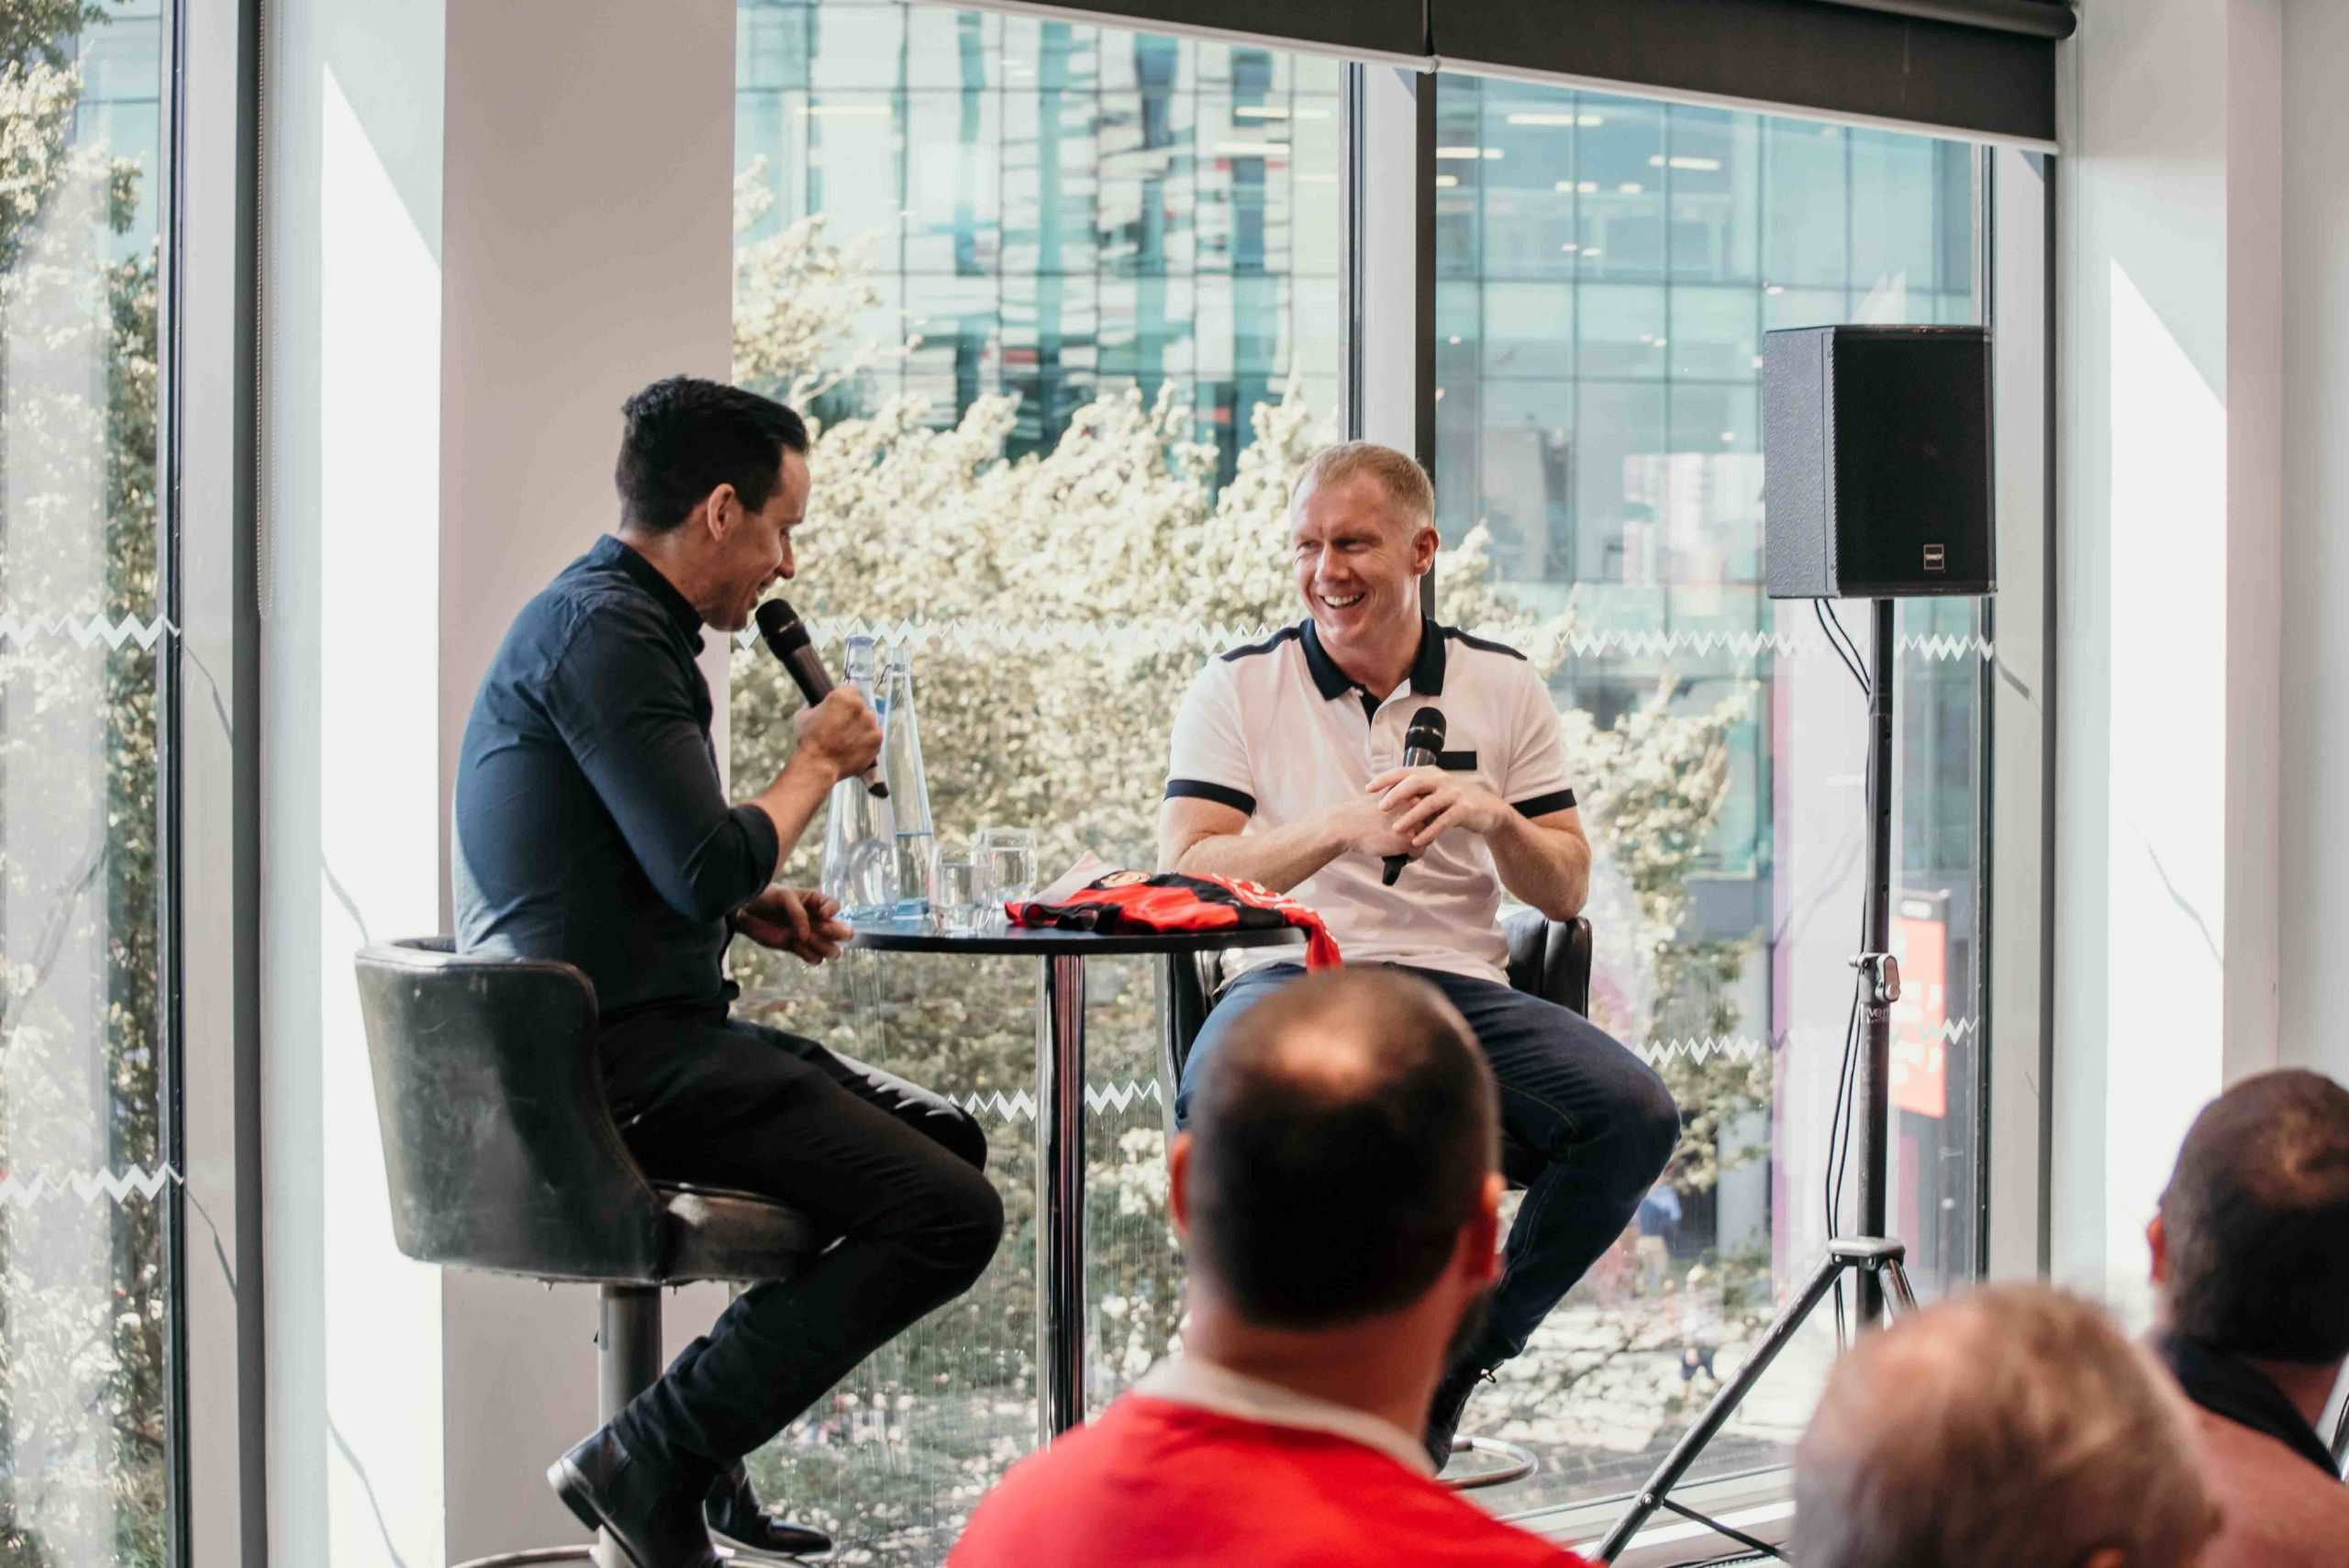 HALF TERM AT HOTEL FOOTBALL– with Paul Scholes